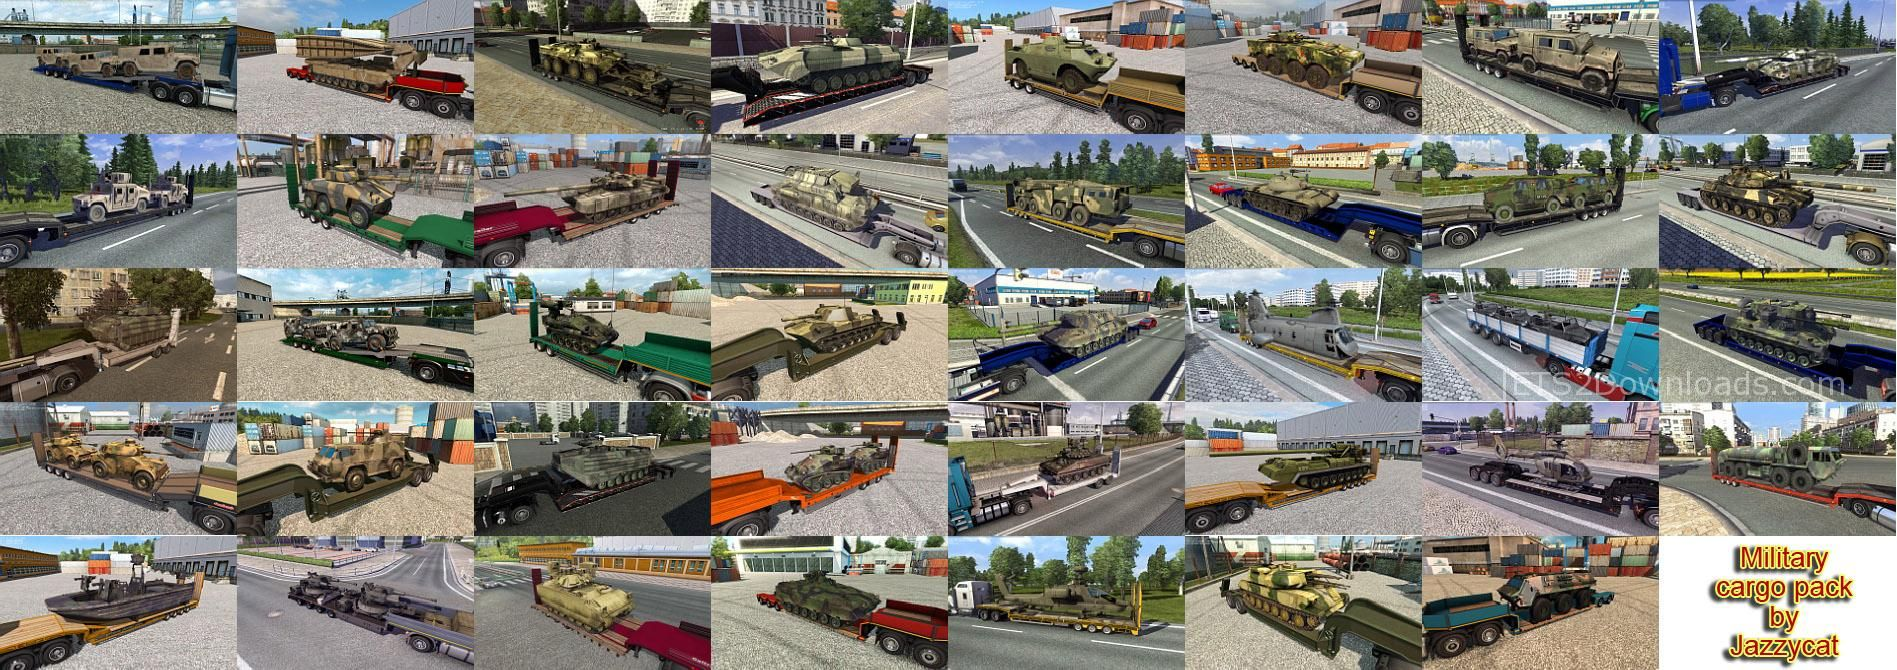 Addons For The Military Cargo Pack v2 3 From Jazzycat - ETS2